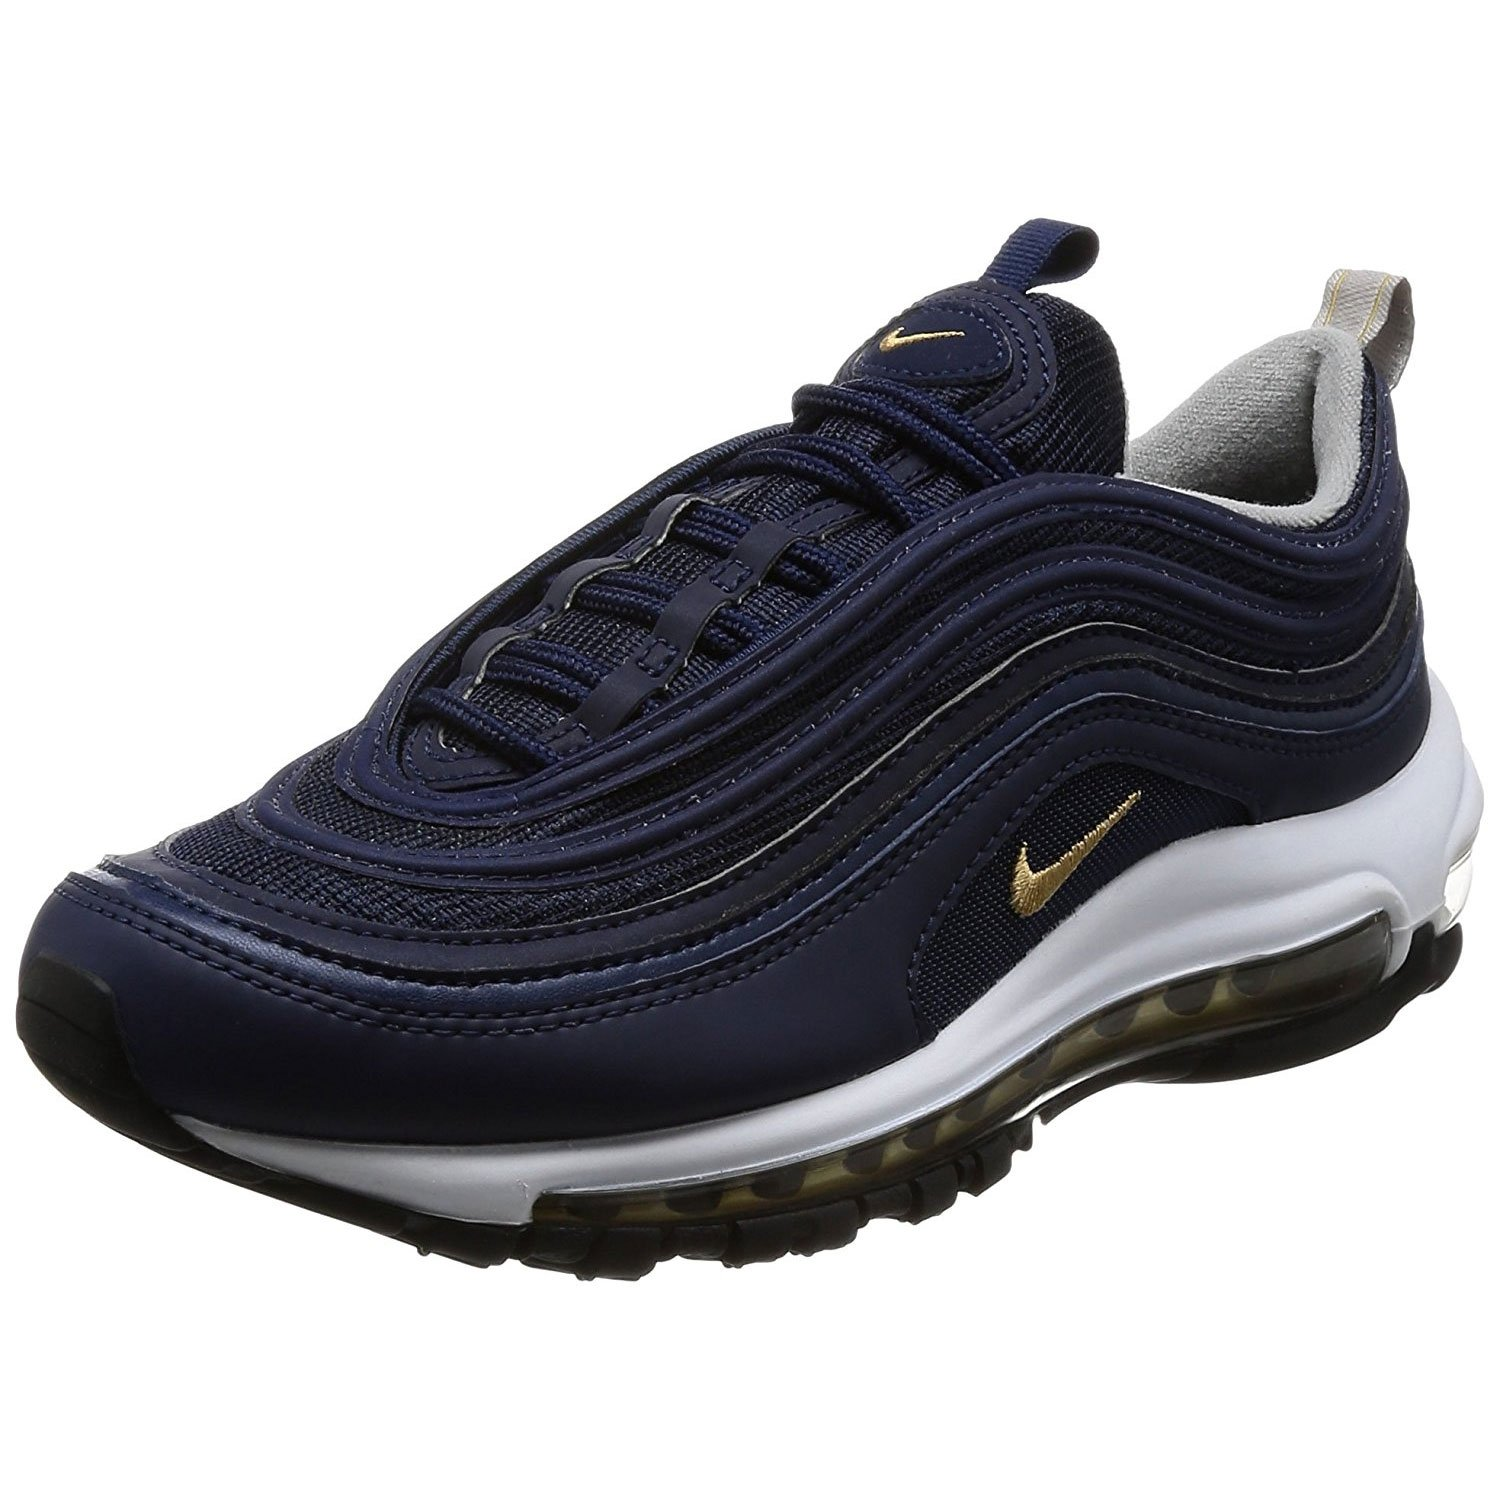 NIKE AIR MAX 97 - SIZE 12 US by NIKE (Image #4)